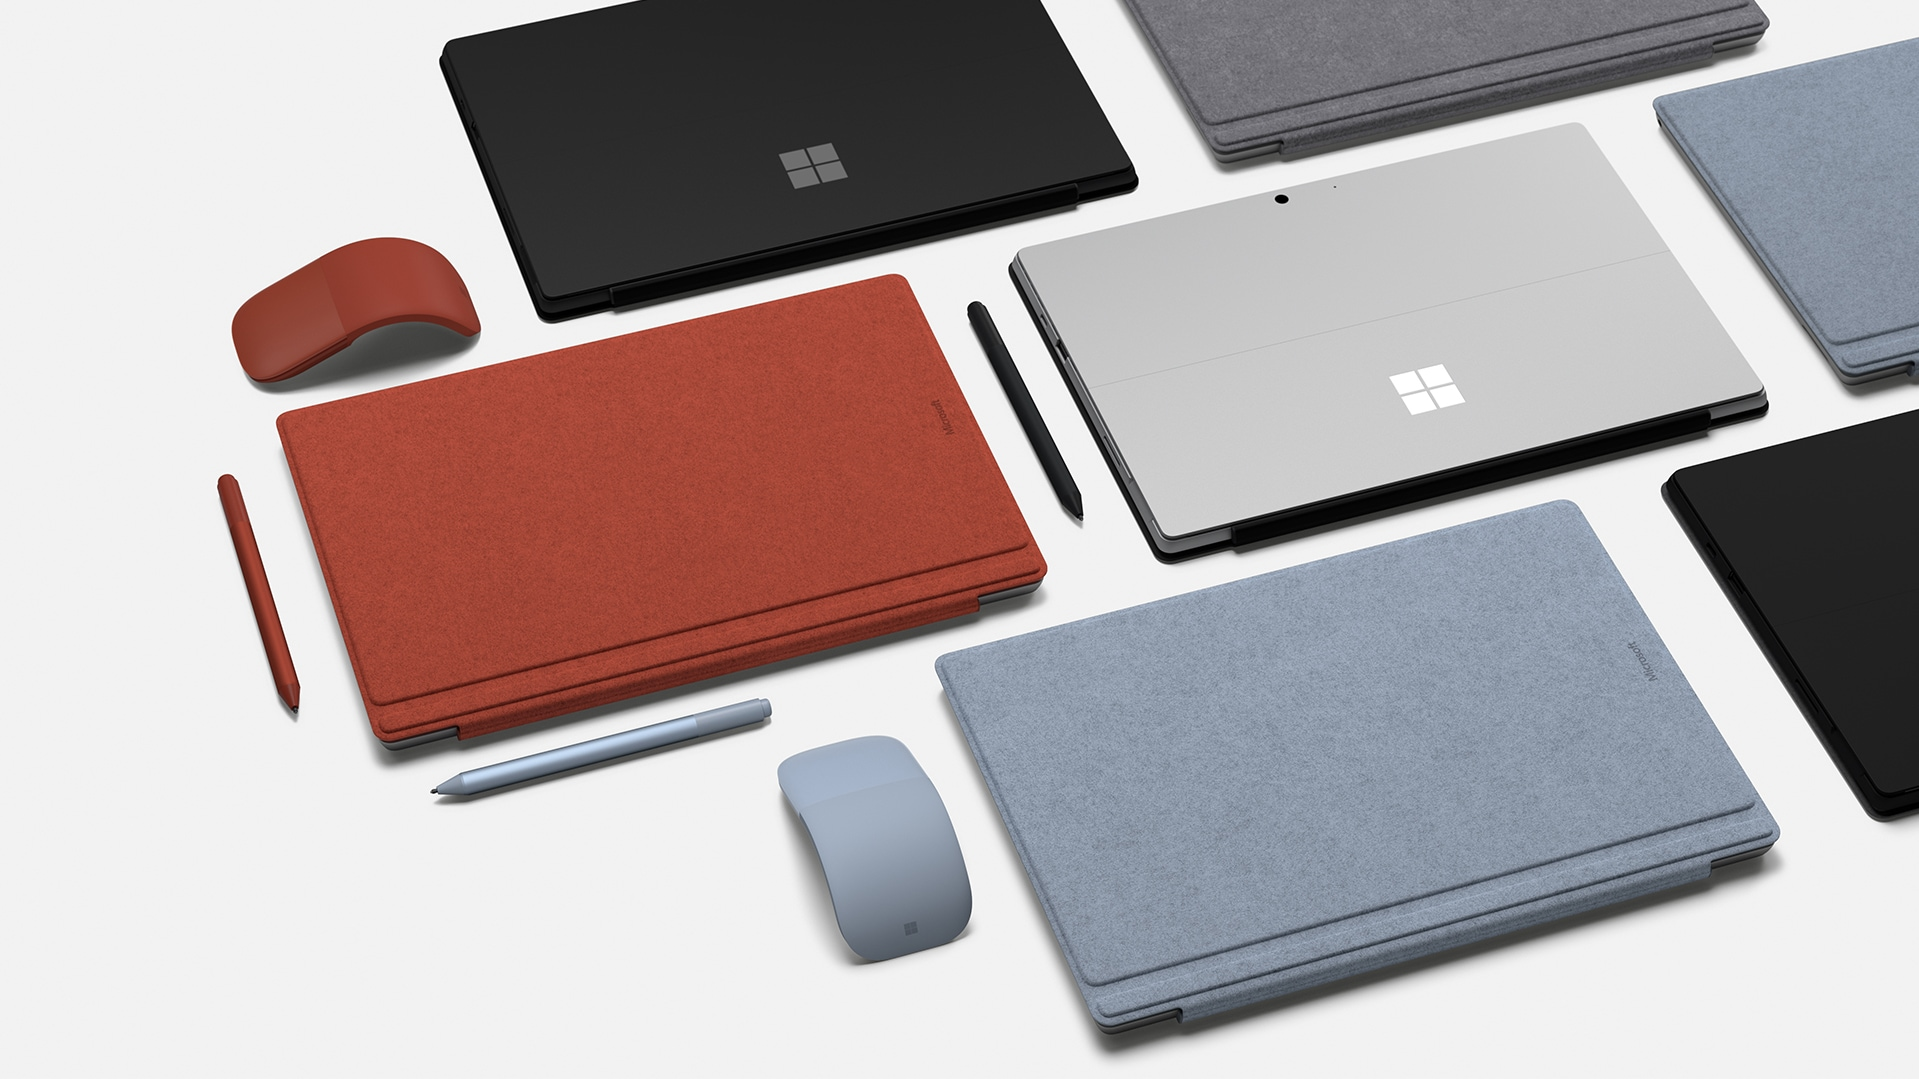 Grouping of Surface Type Covers, Surface Pens, and Surface Mice on tabletop